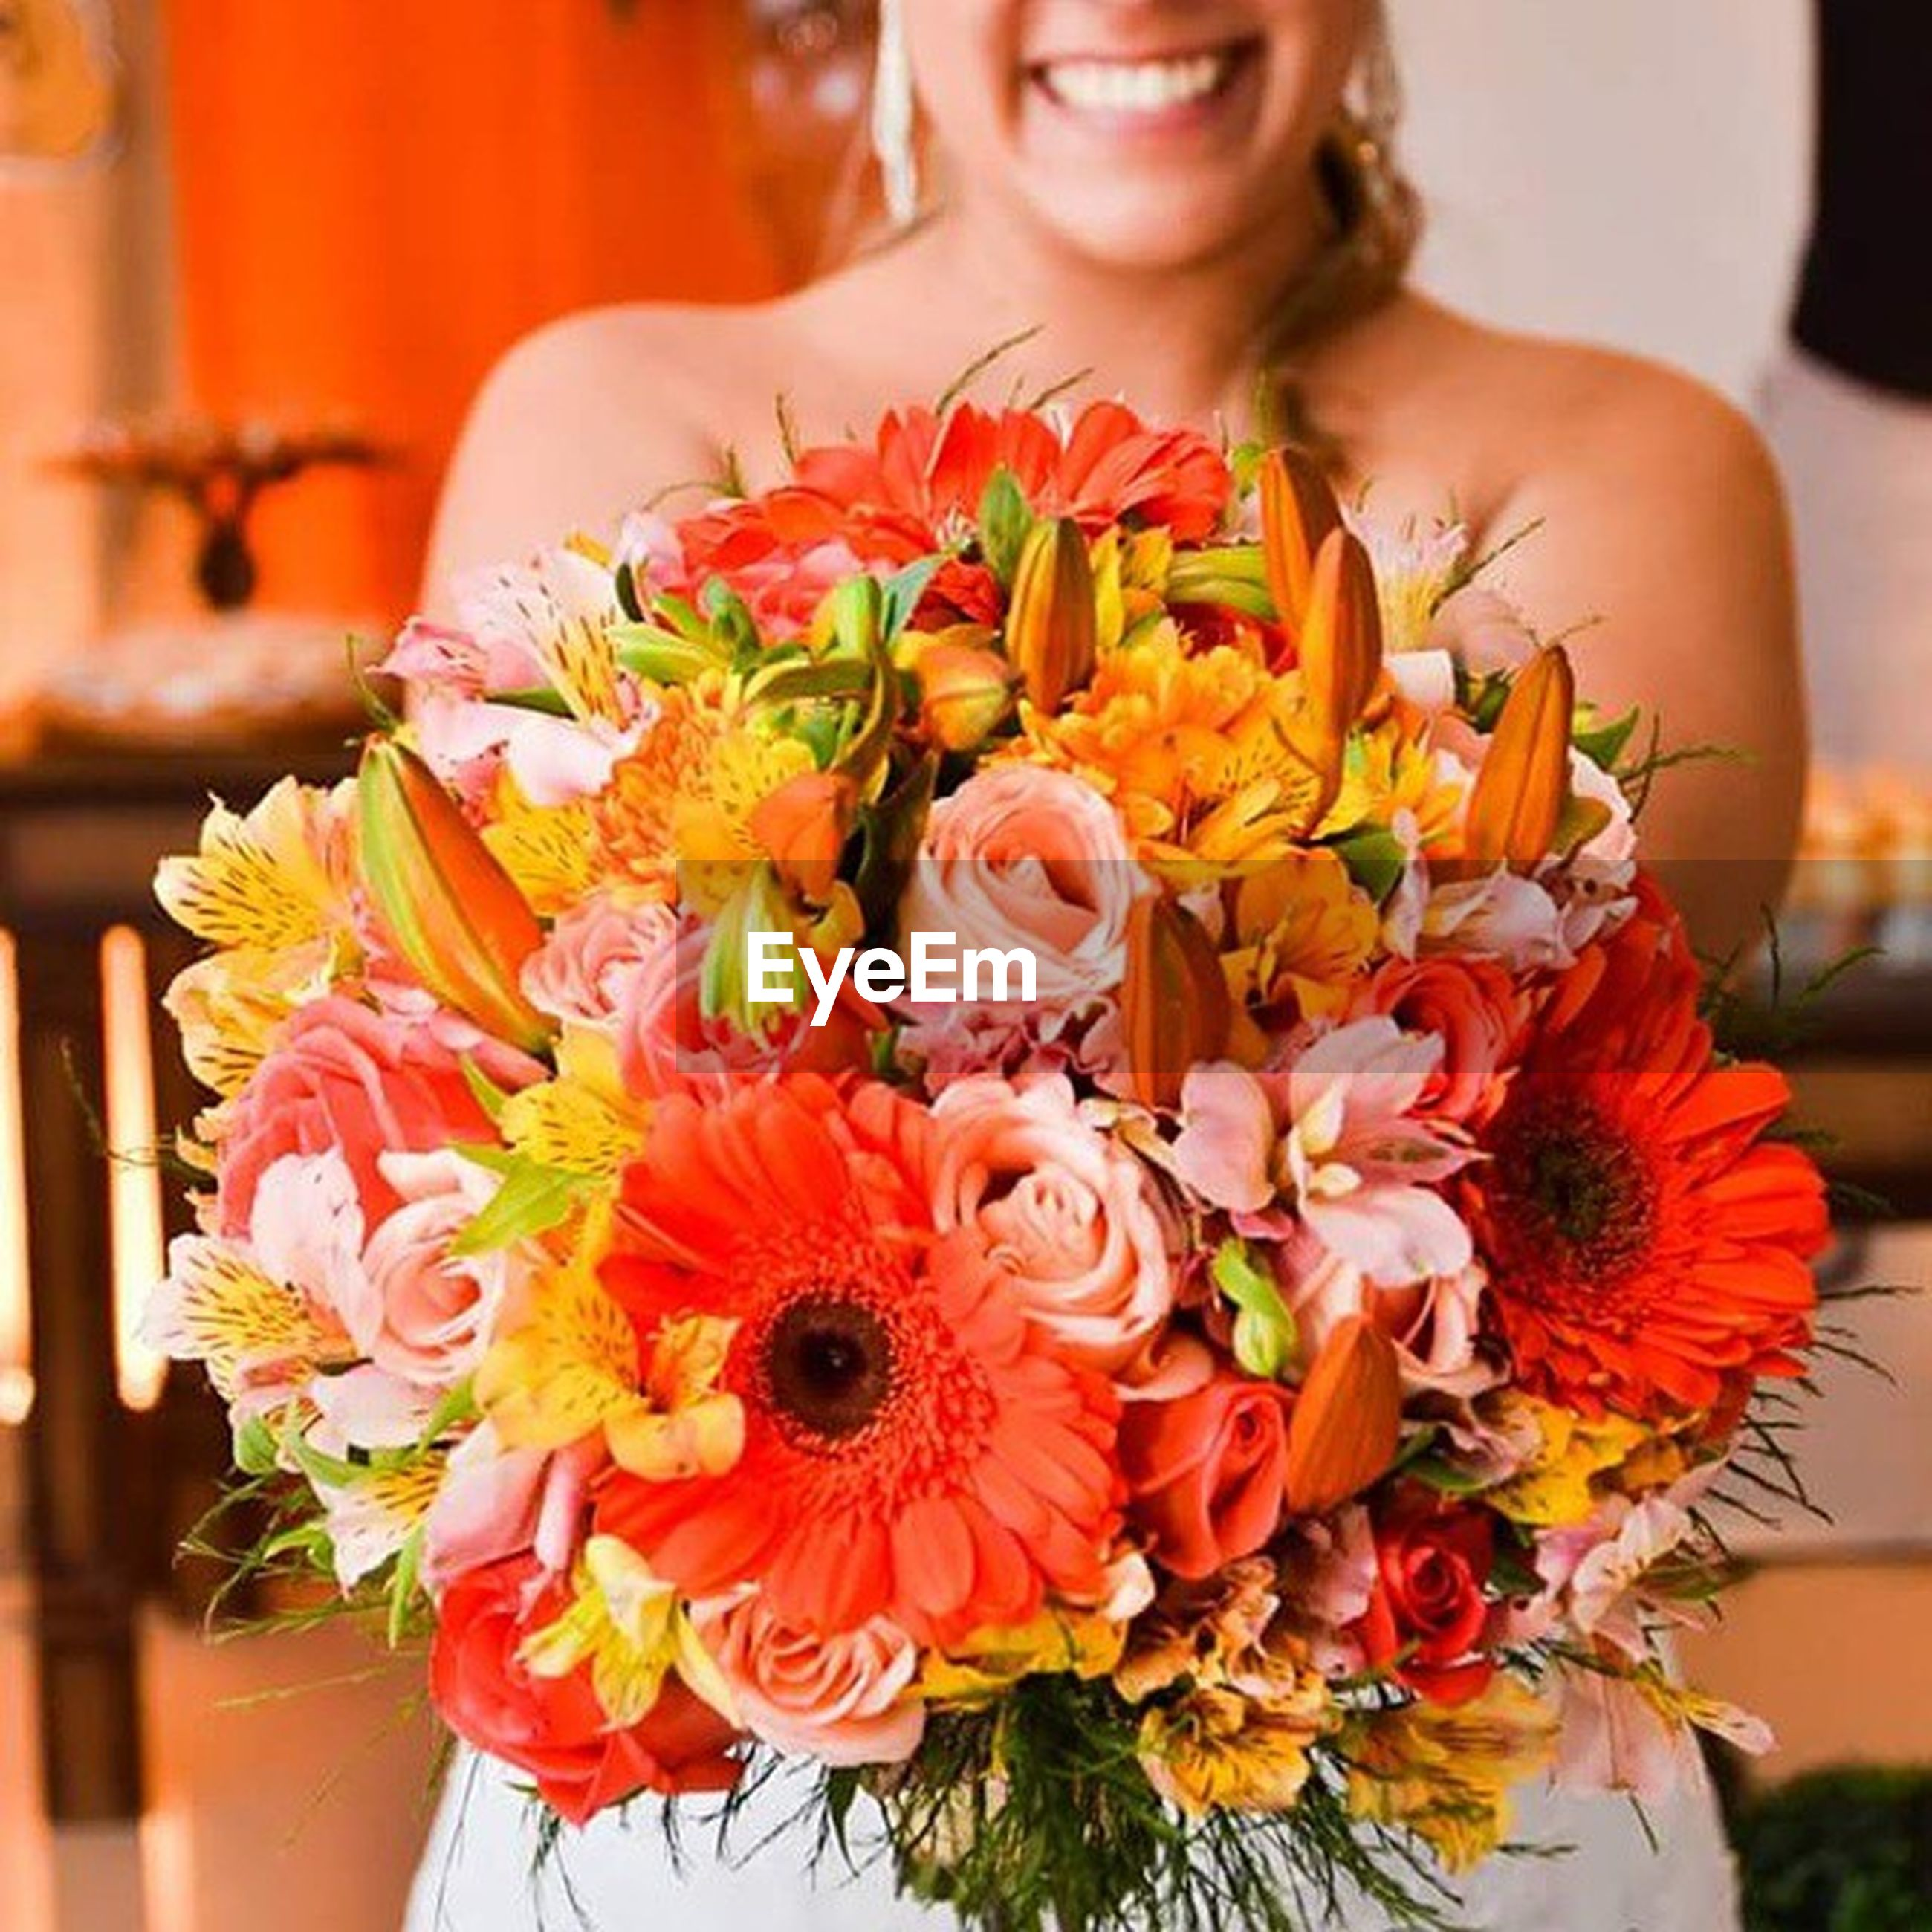 flower, freshness, indoors, lifestyles, person, focus on foreground, holding, front view, leisure activity, fragility, bouquet, young women, casual clothing, young adult, petal, looking at camera, close-up, smiling